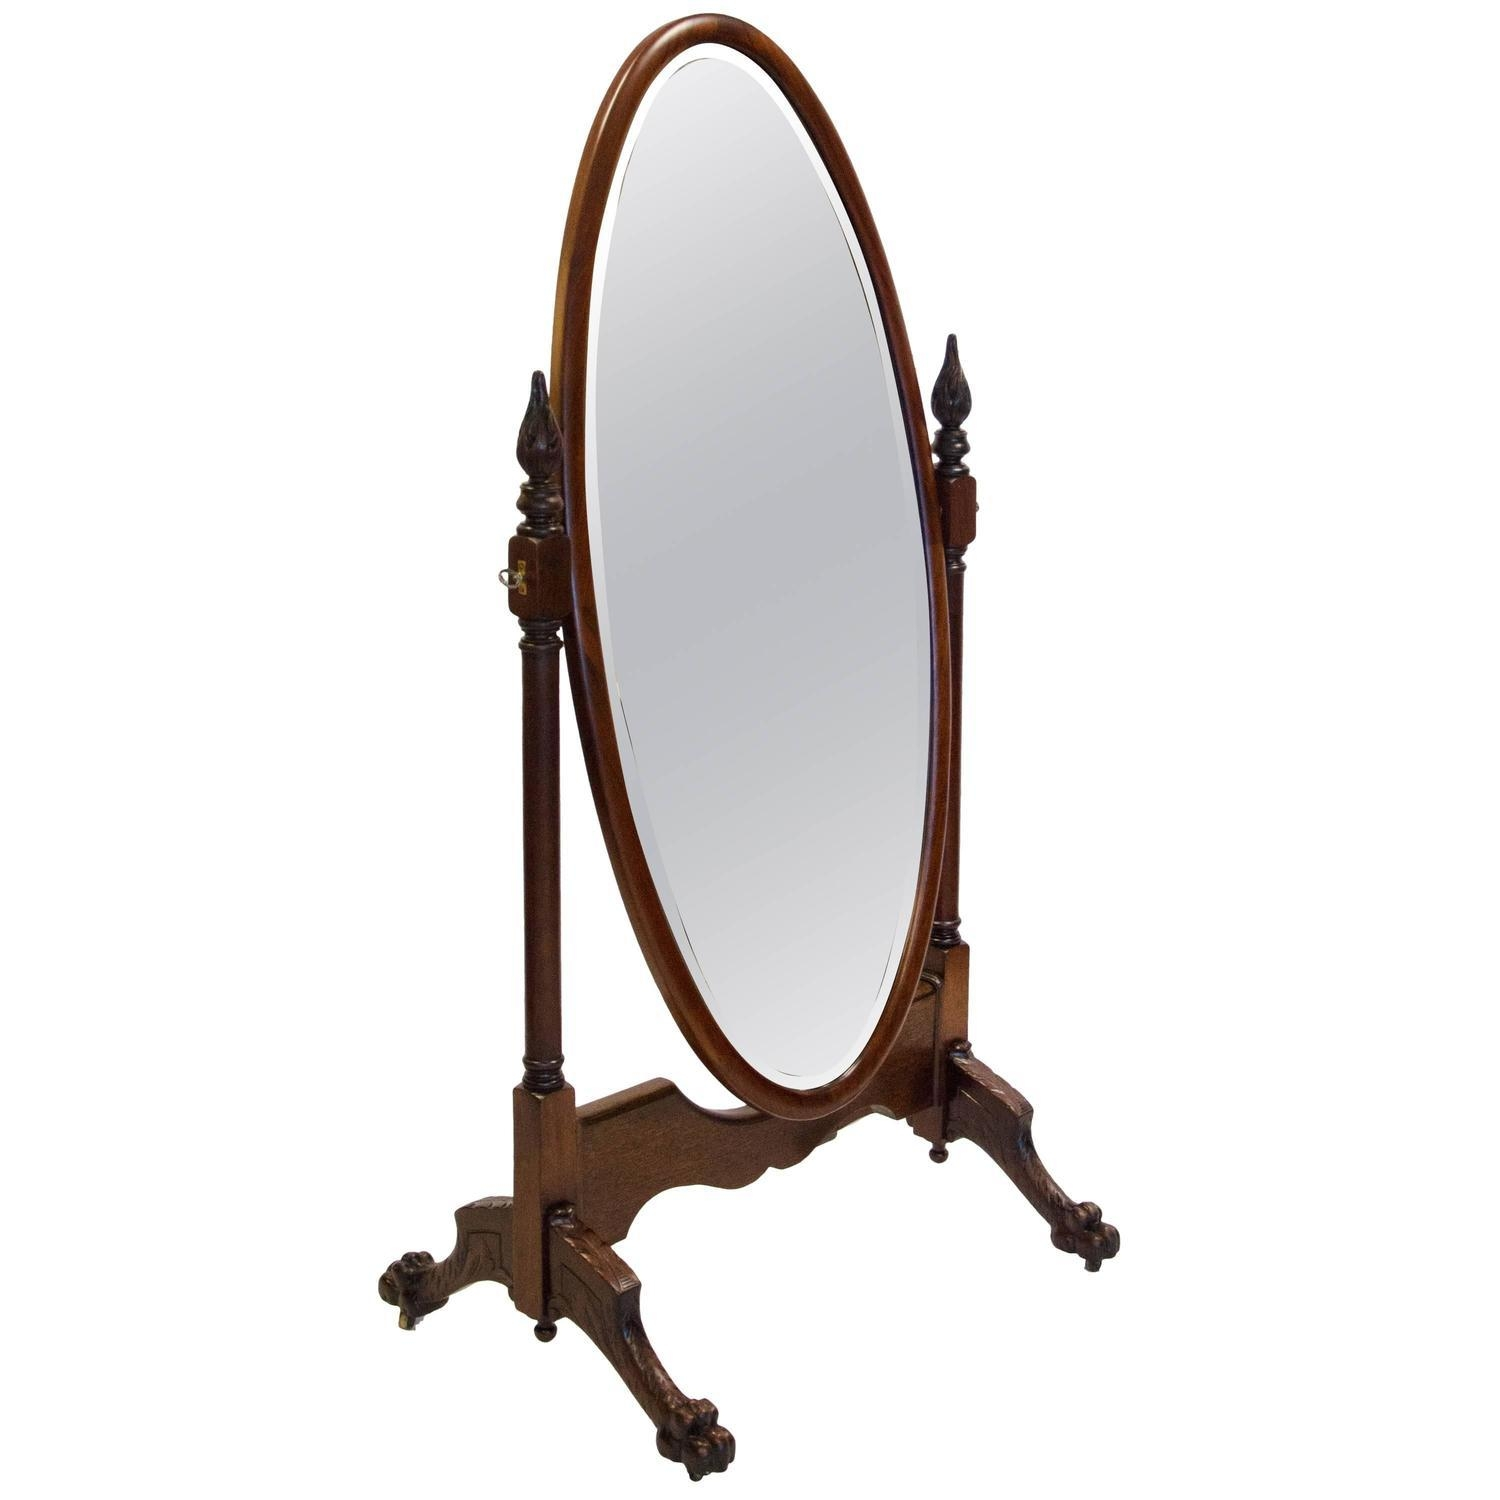 Antique & Vintage Floor Mirrors And Full Length Mirrors For Sale Pertaining To Vintage Full Length Mirror (View 5 of 20)